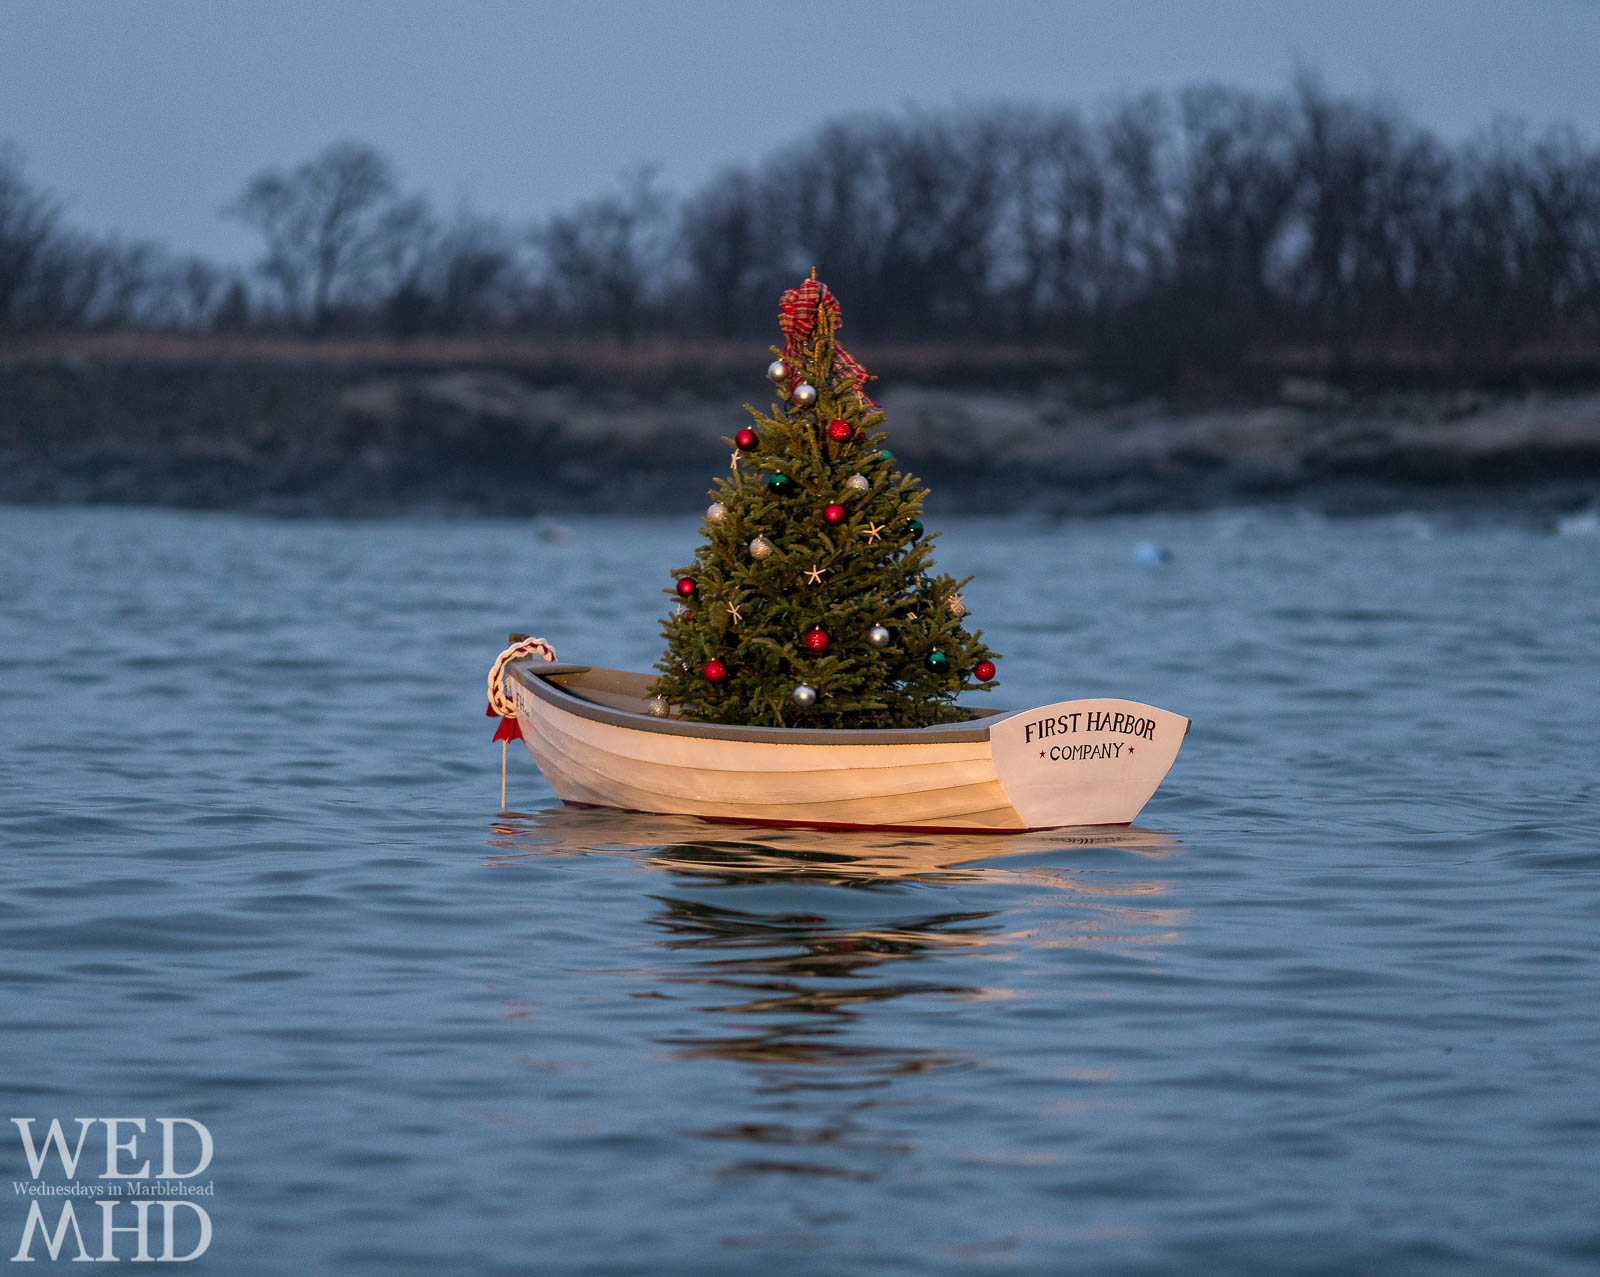 The First Harbor company boat holds a perfectly decorated Christmas tree in the waters of little harbor in Marblehead